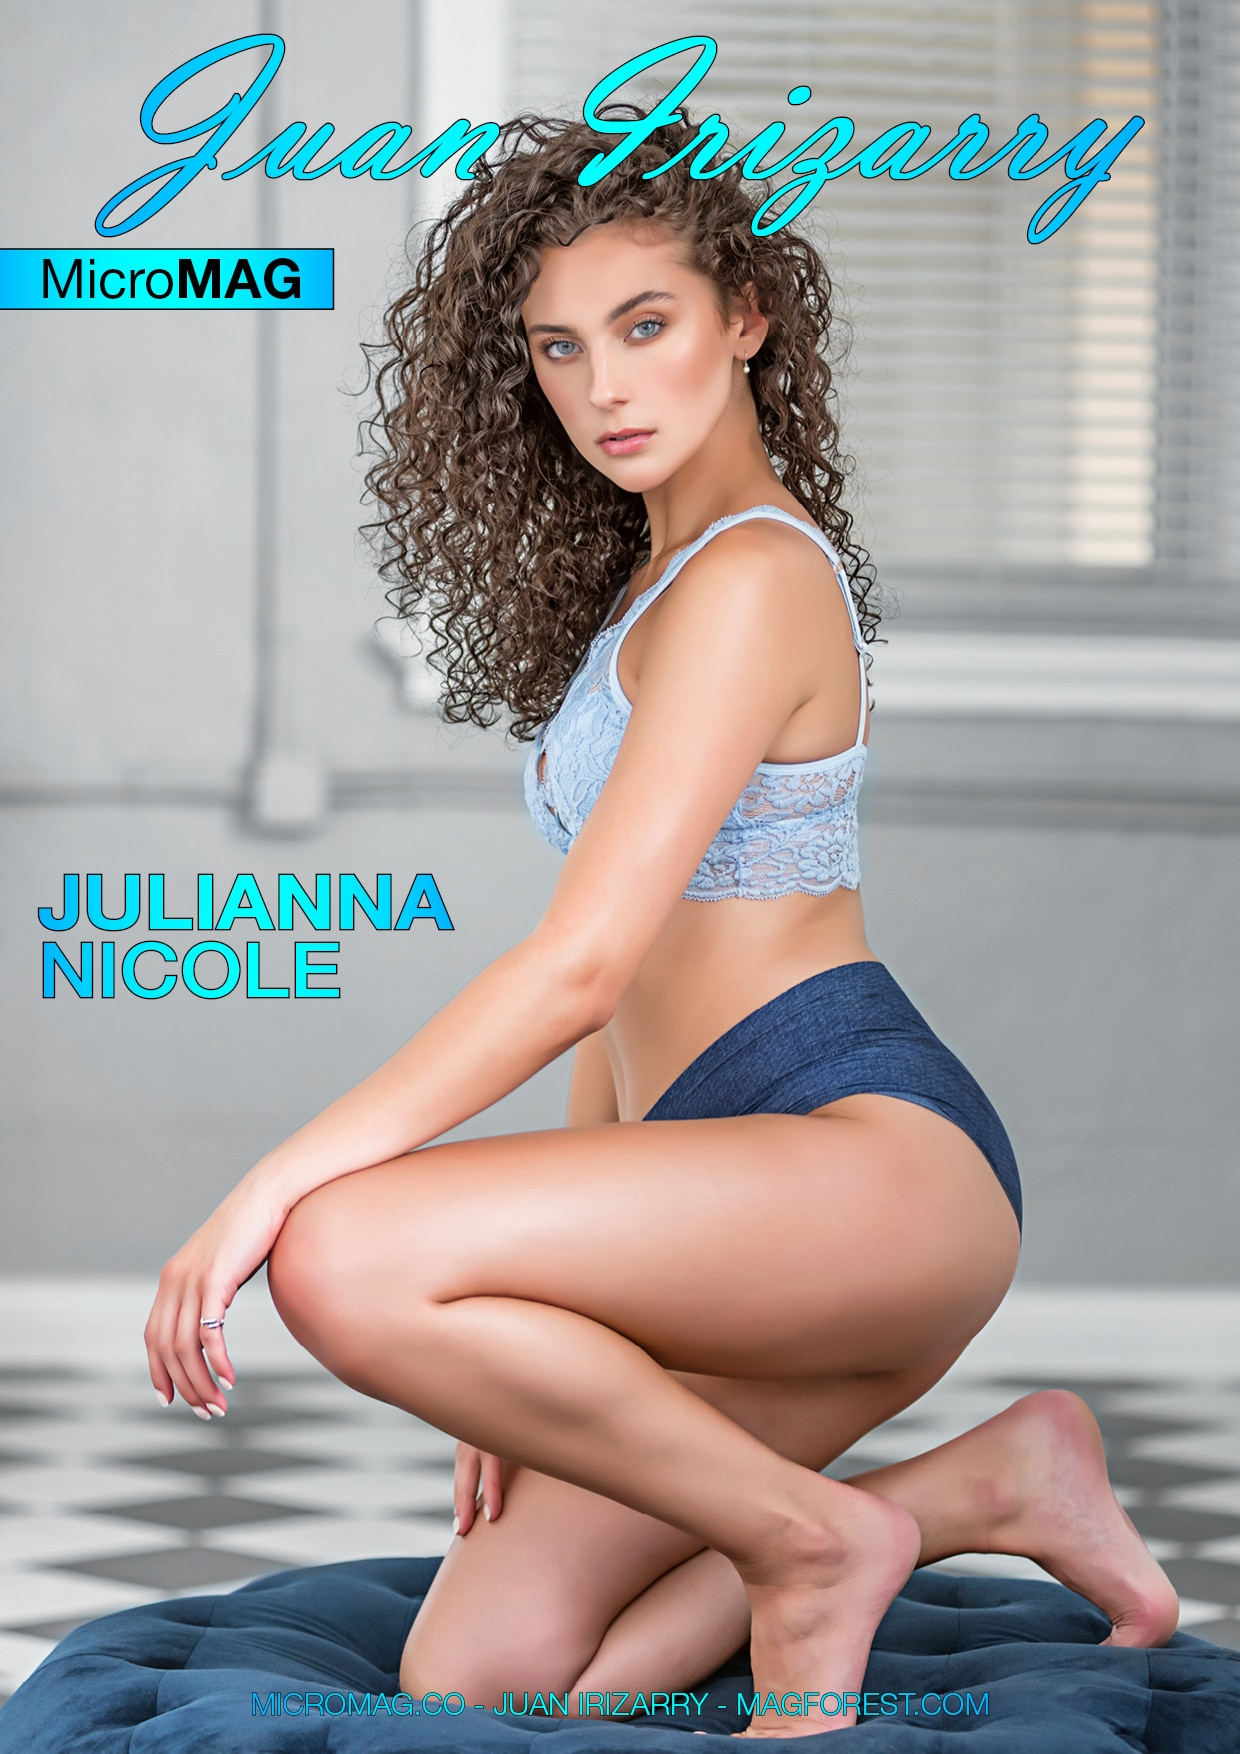 Juan Irizarry MicroMAG - Julianna Nicole - Issue 4 4